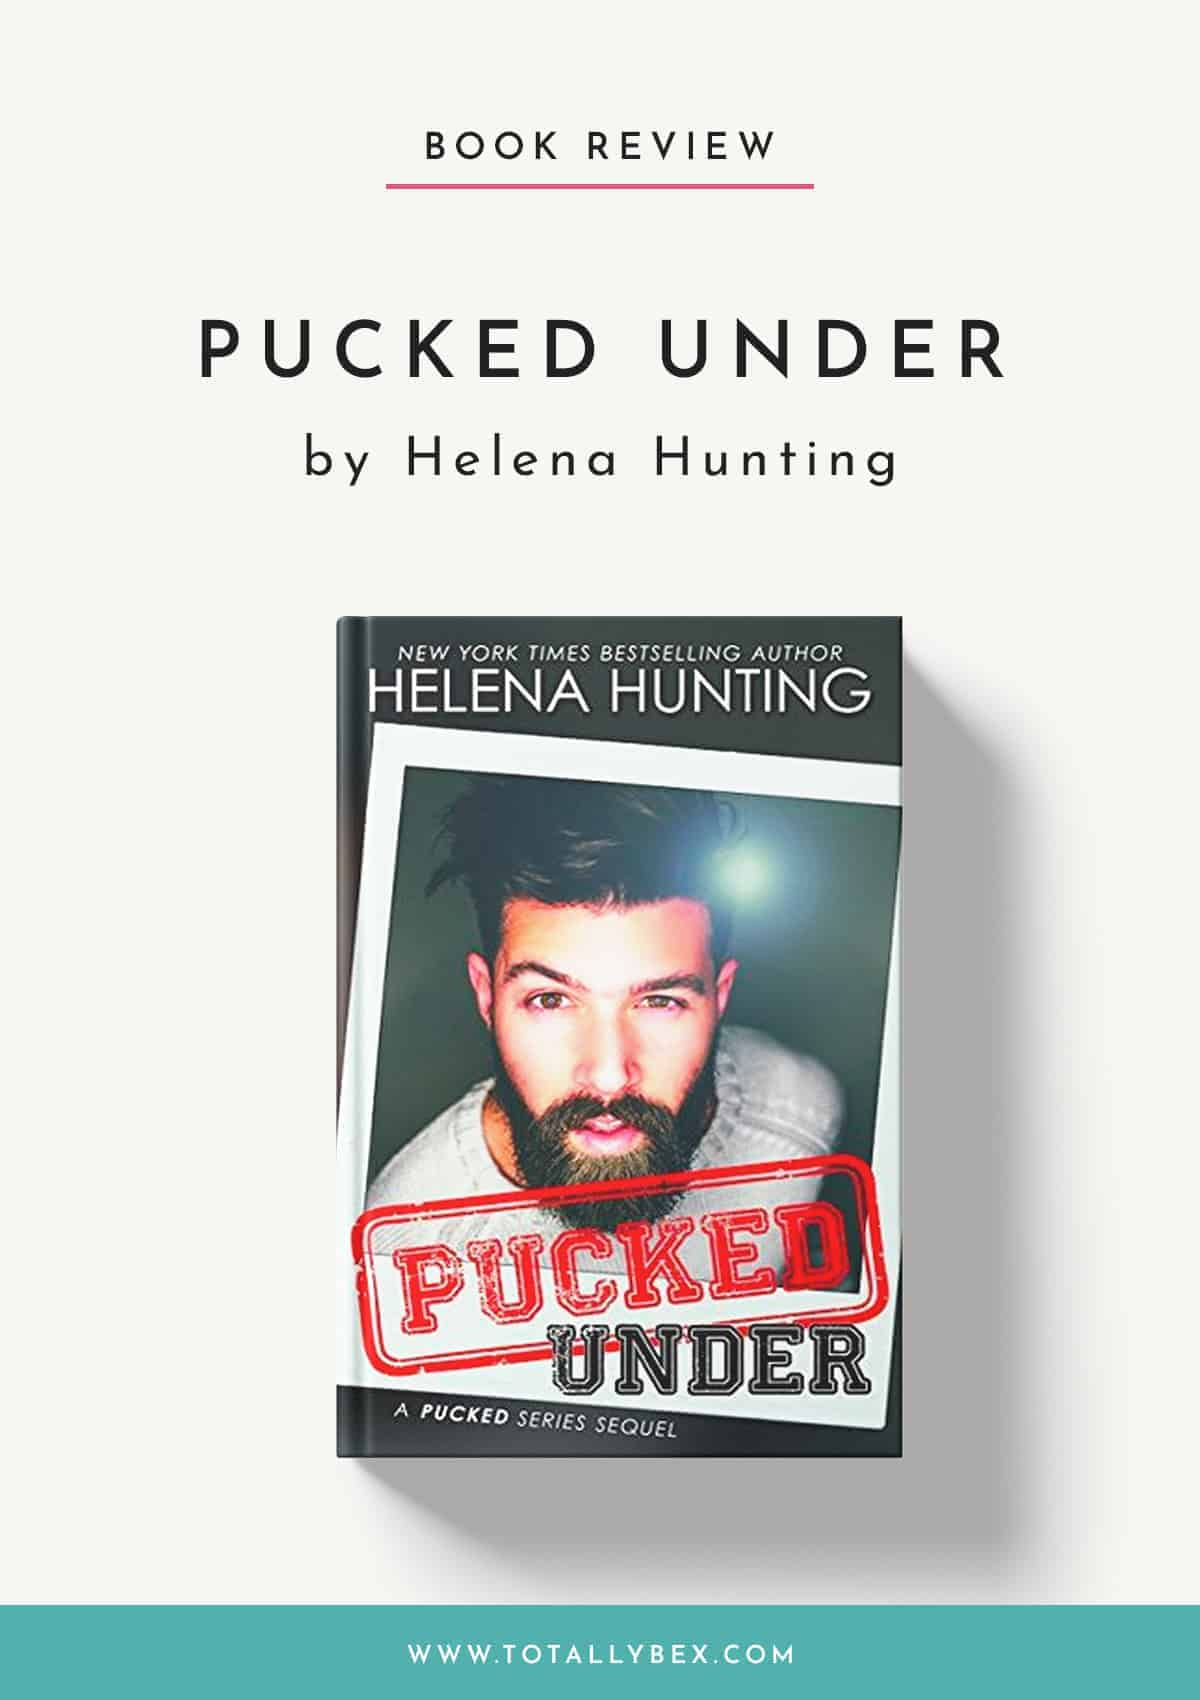 Pucked Under by Helena Hunting-Book Review